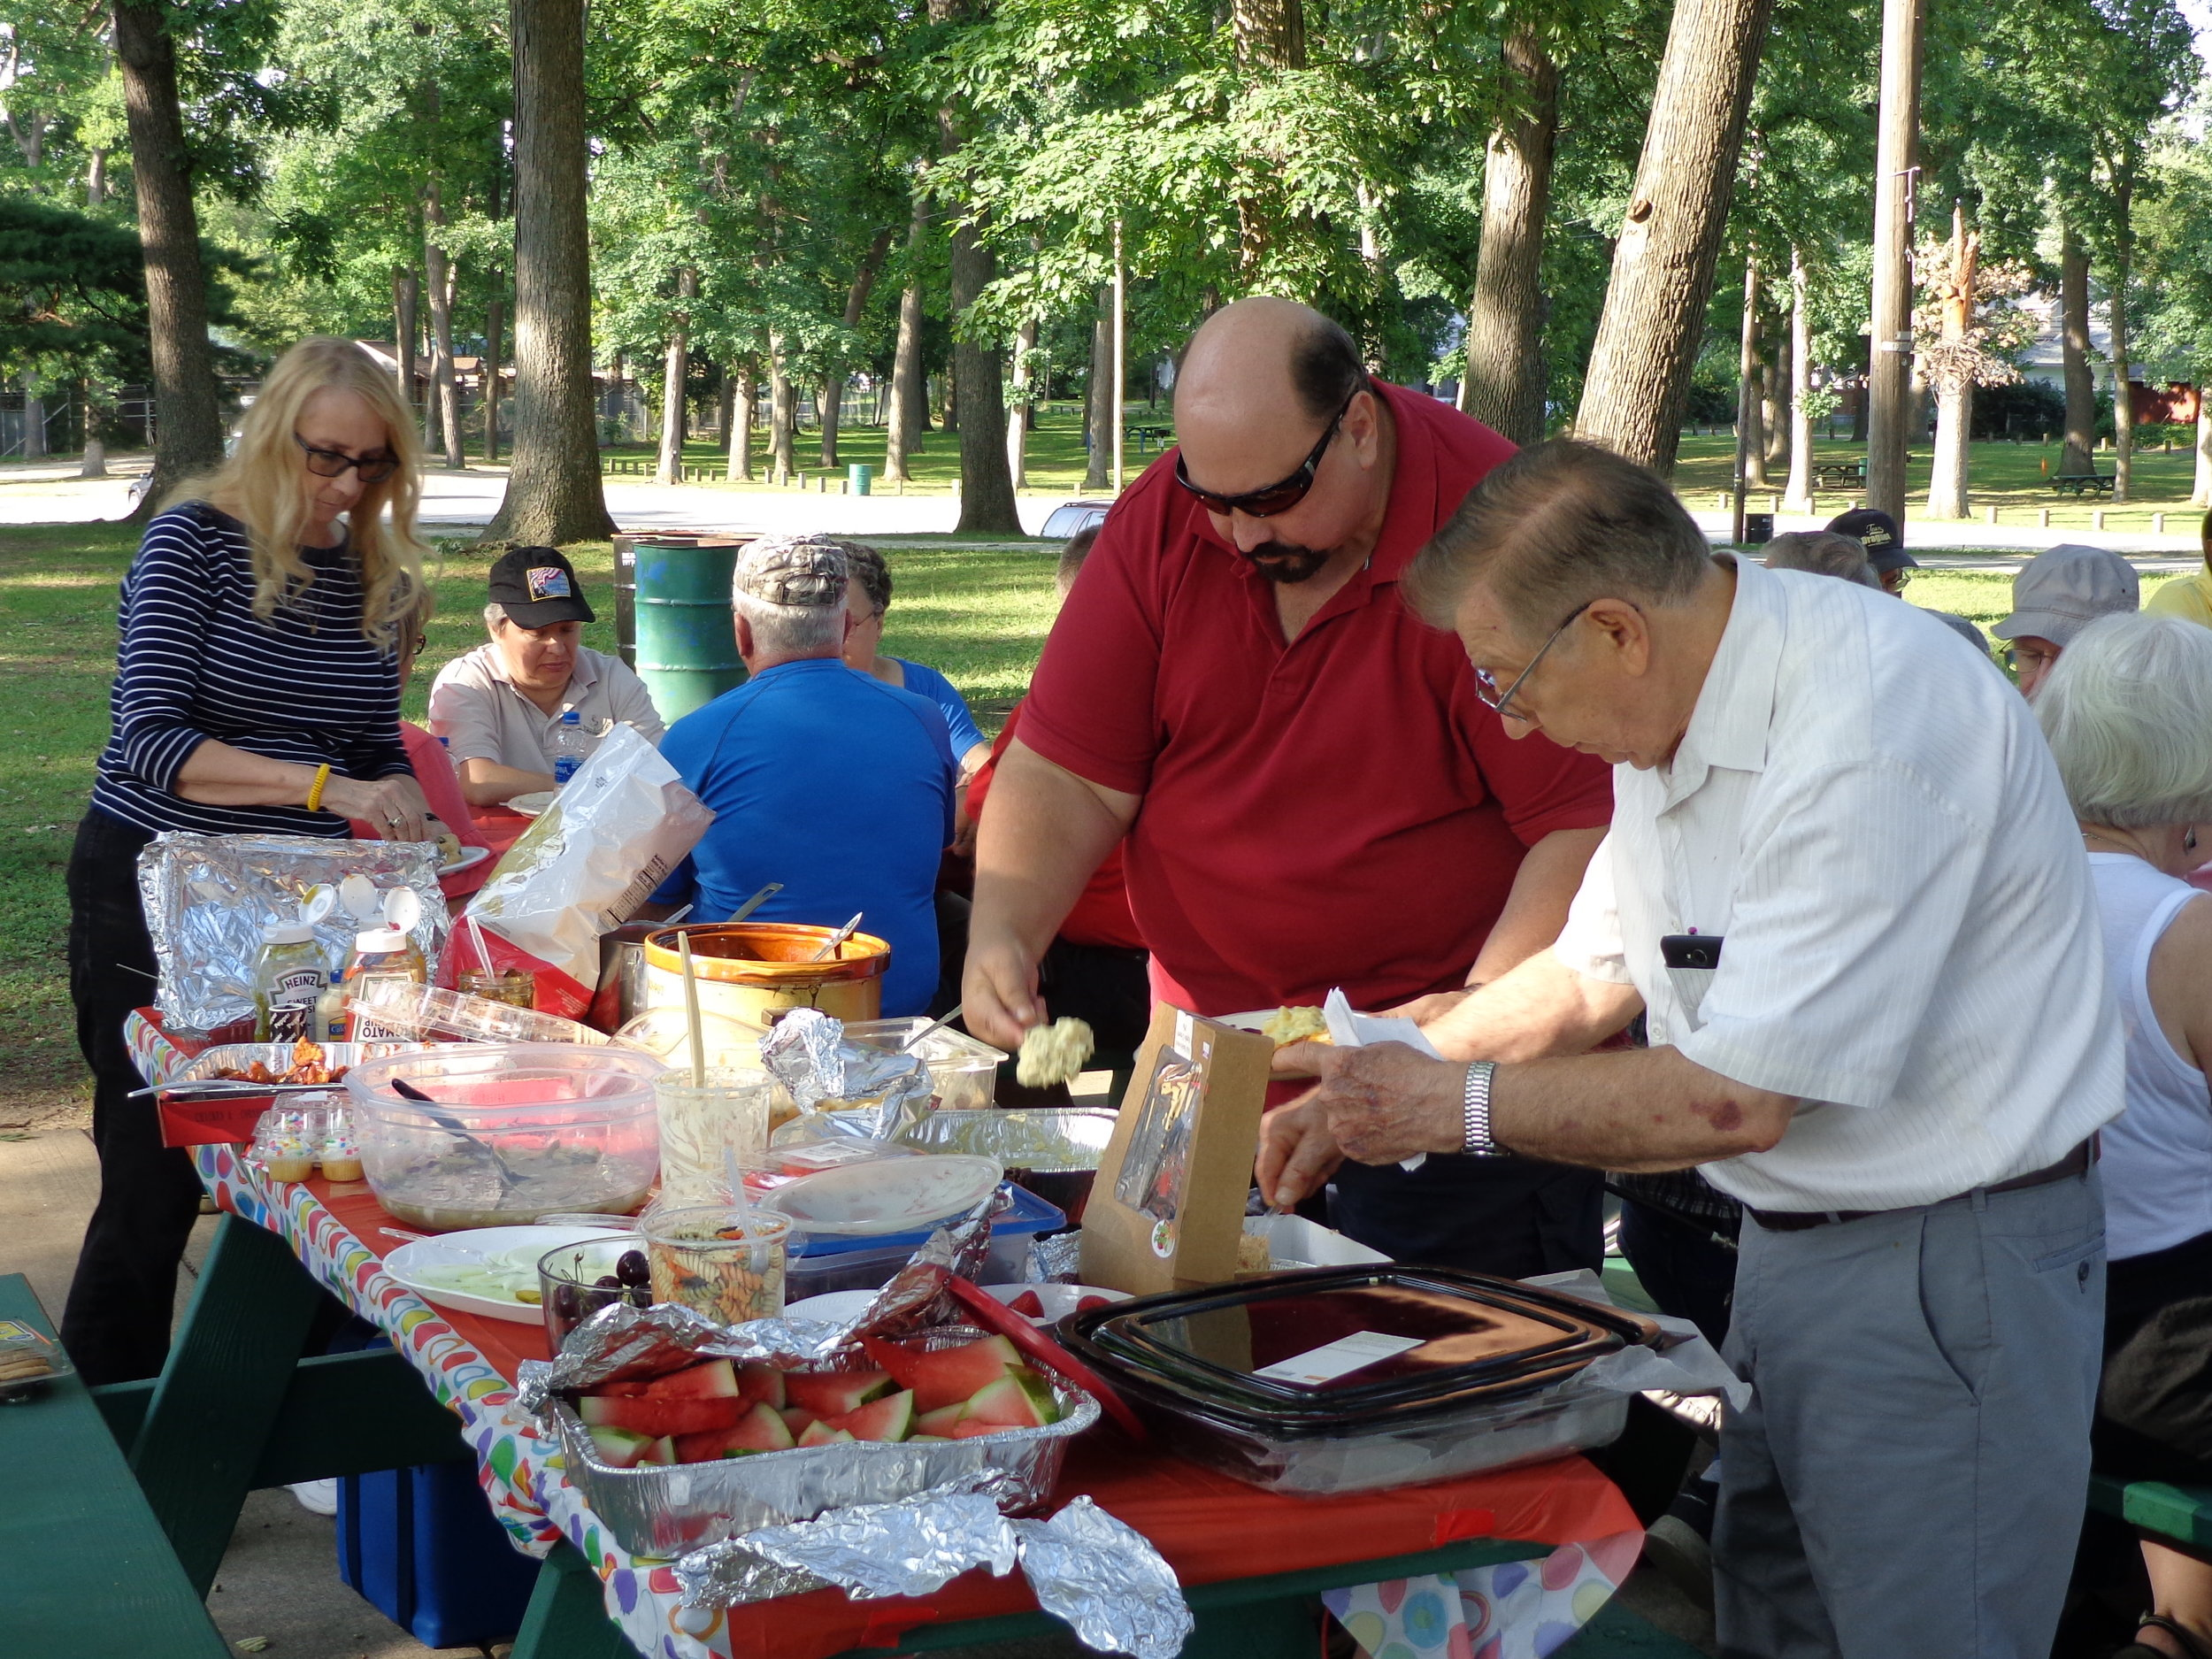 - Members Dan Caesar NI9Y, Jeff Wynegar KA9TOC and June Hill KC9IIC helping themselves to the many goodies on the food table.